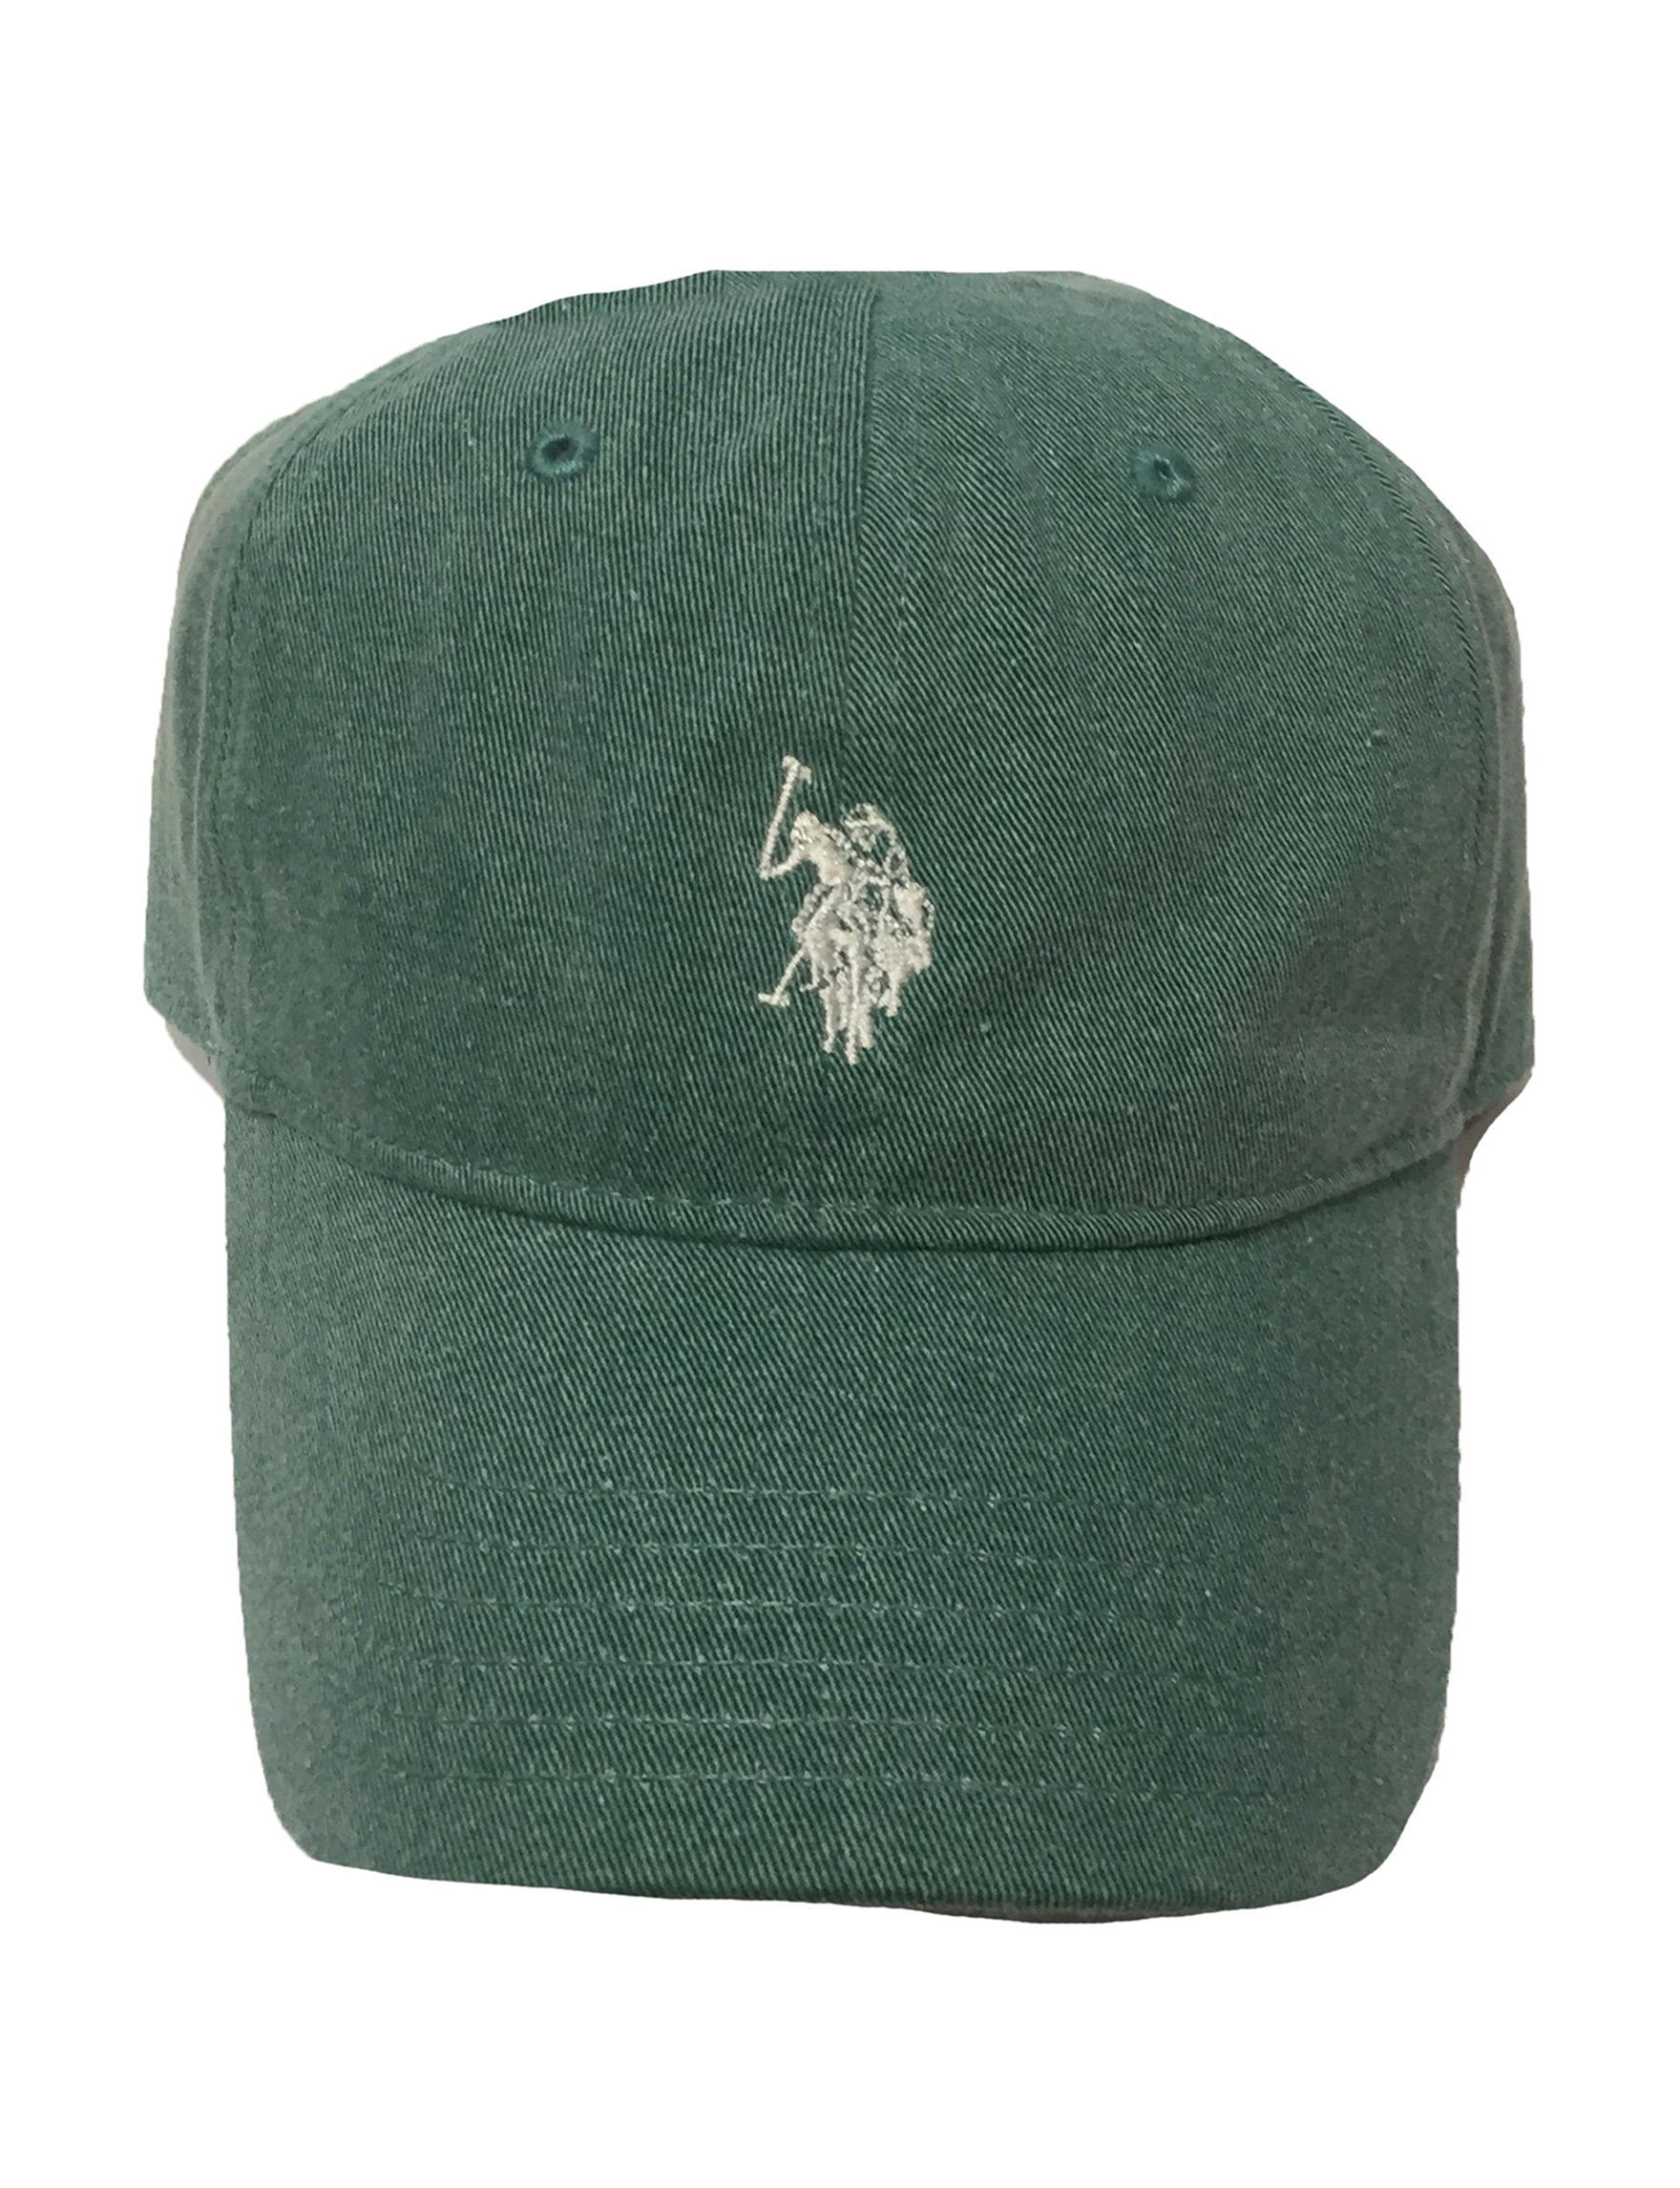 U.S. Polo Assn. Green Hats & Headwear